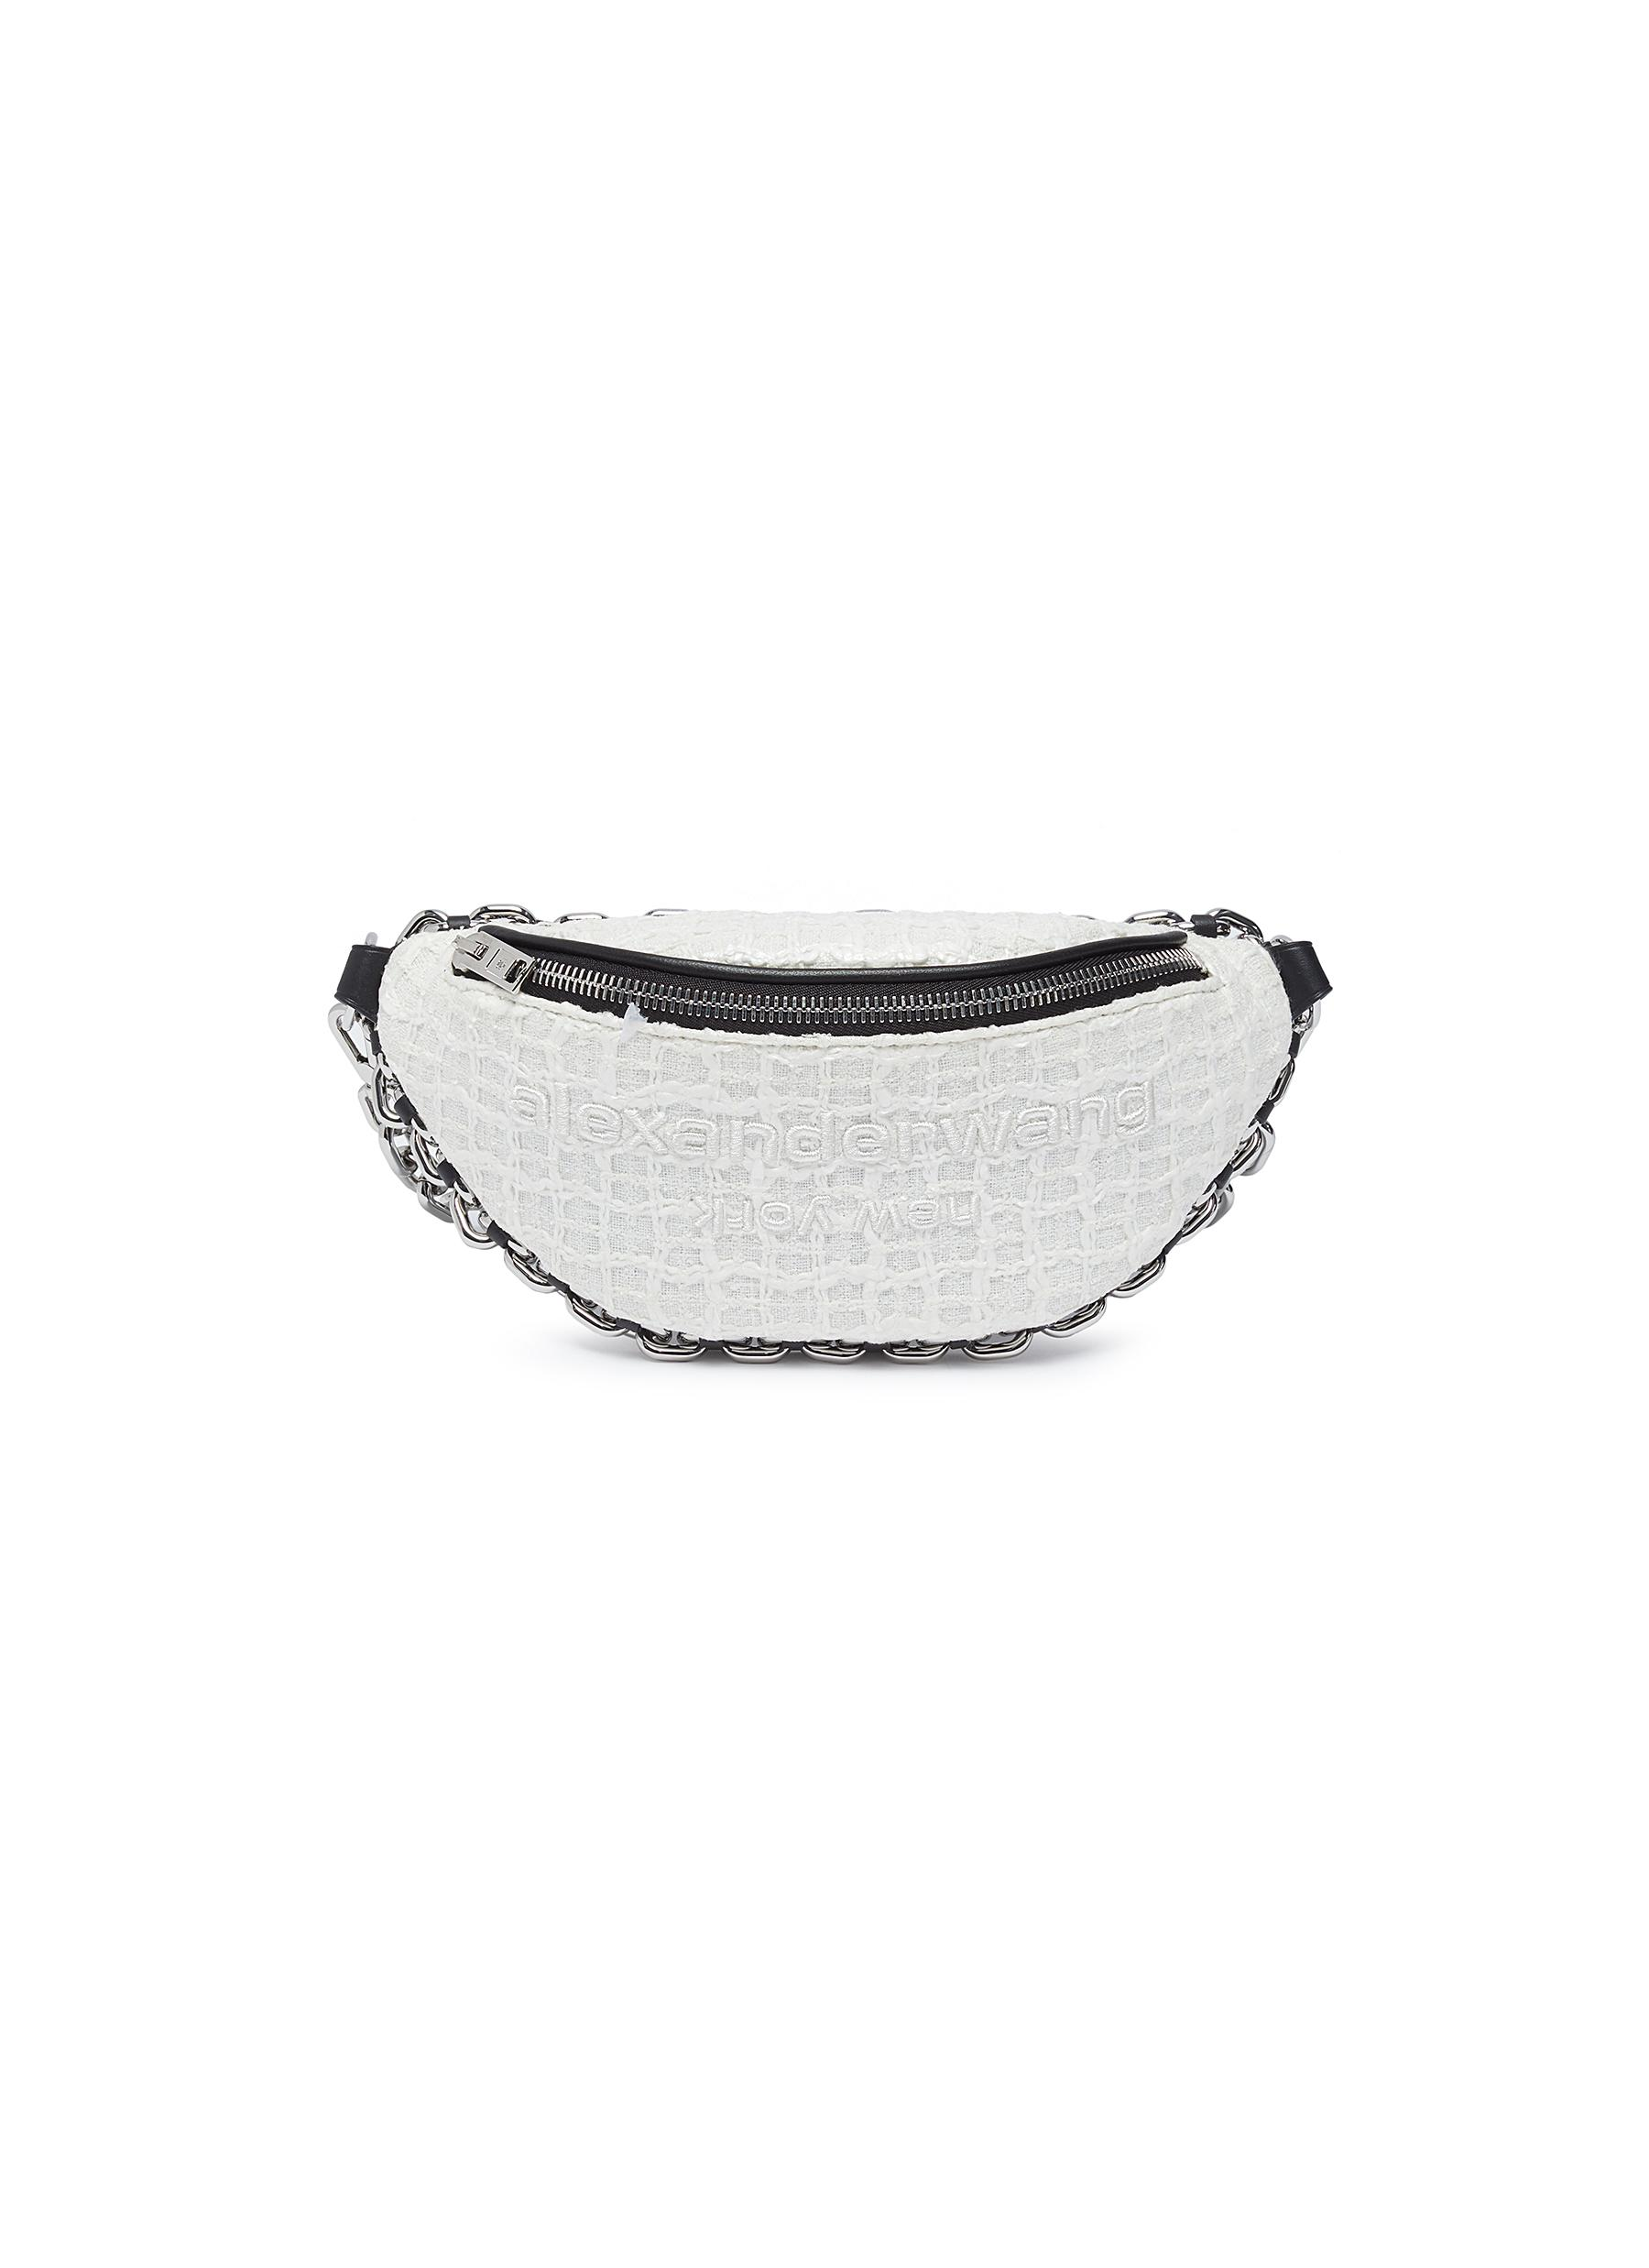 Alexander Wang 'ATTICA' TWEED BUM BAG